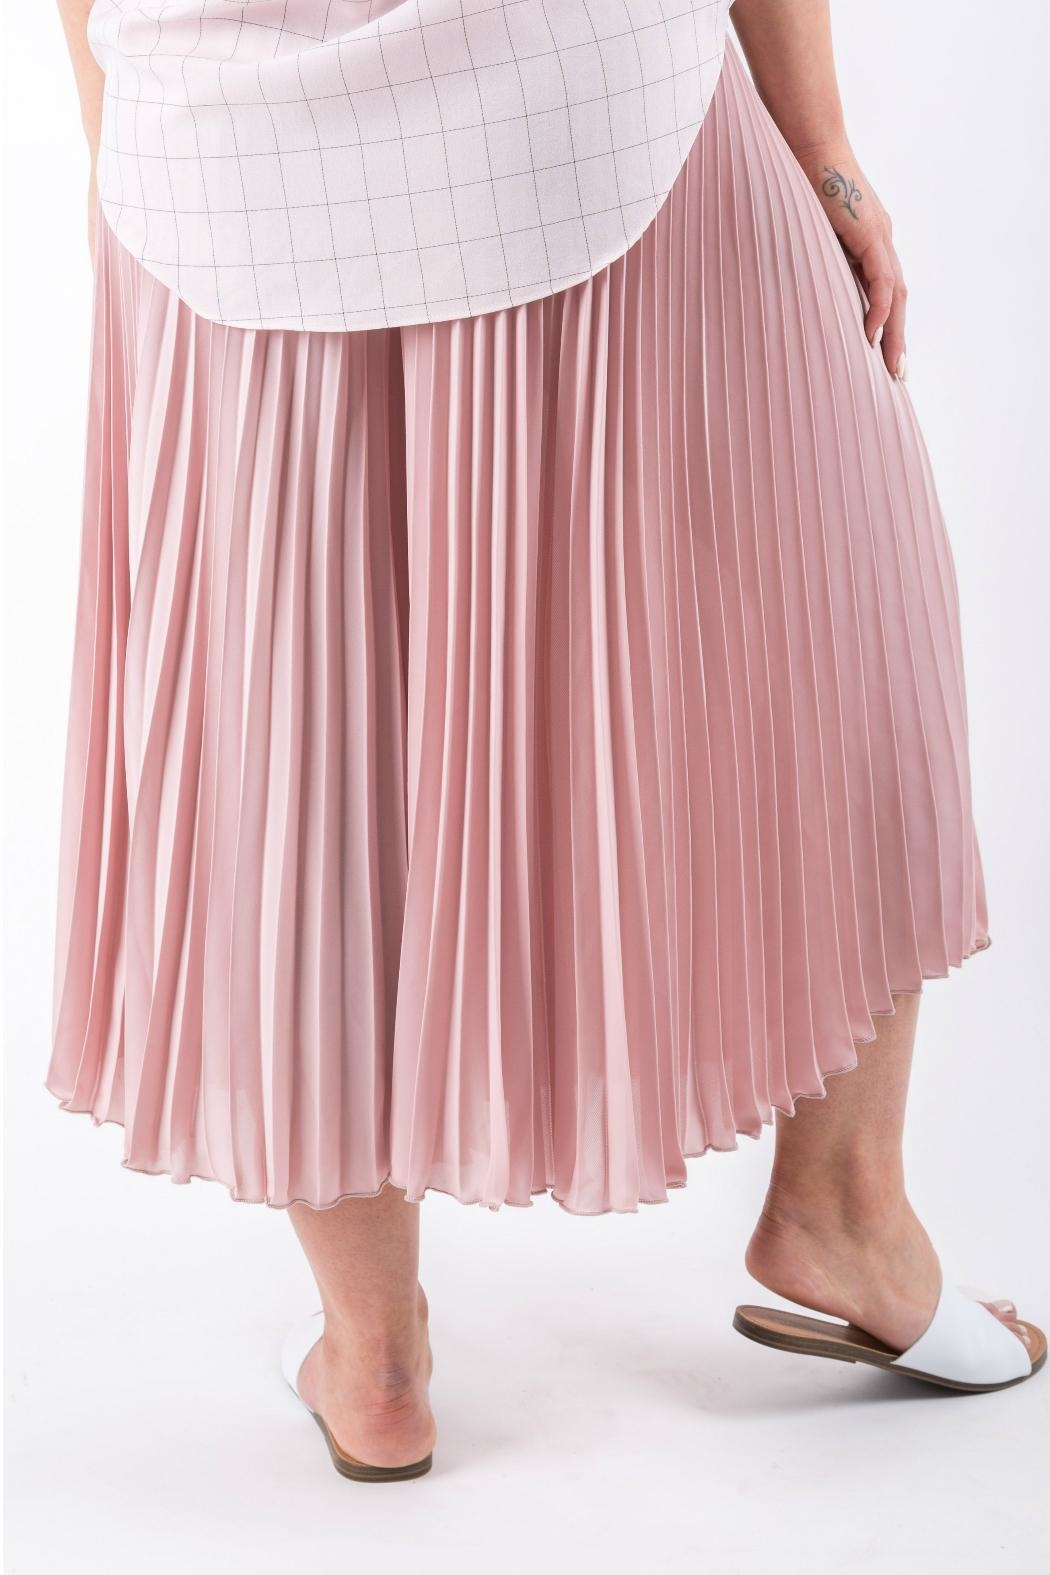 Yuki Tokyo Pleated Wide Culottes - Side Cropped Image